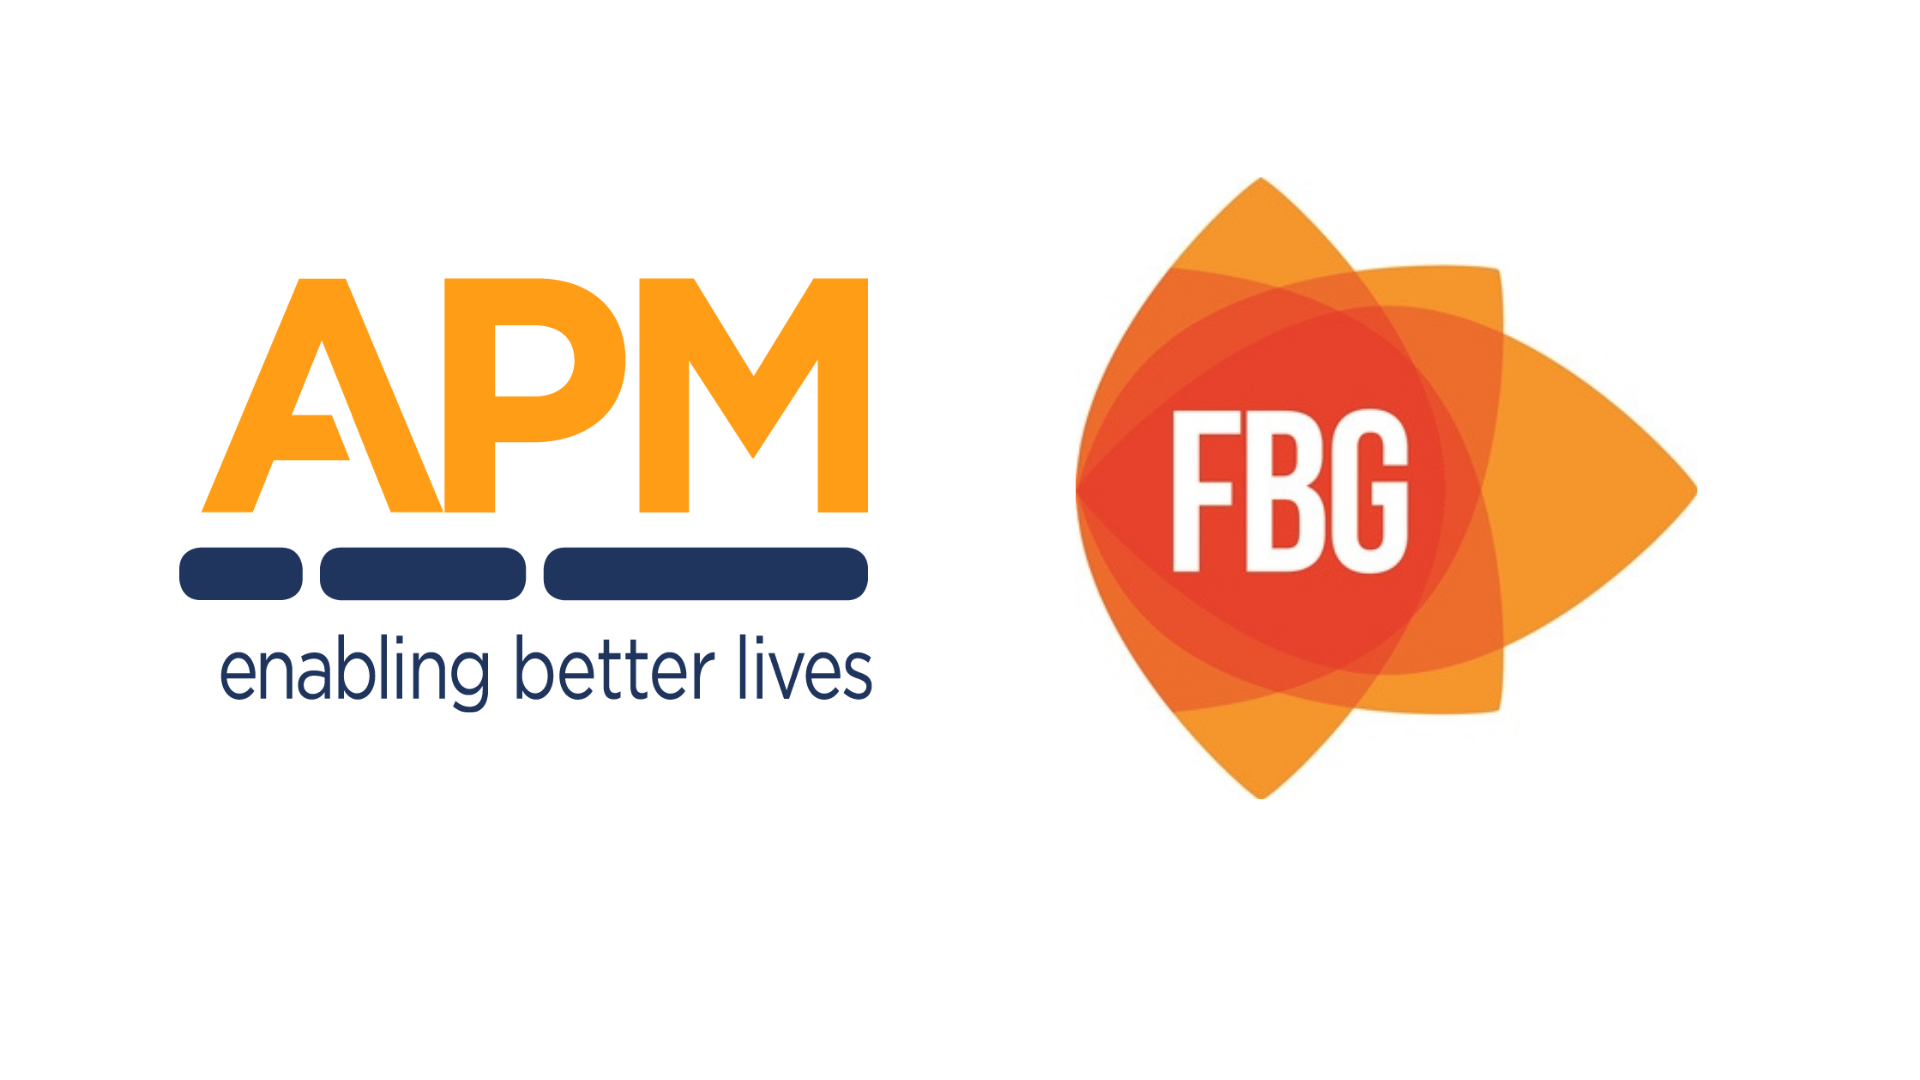 APM and FGB logos